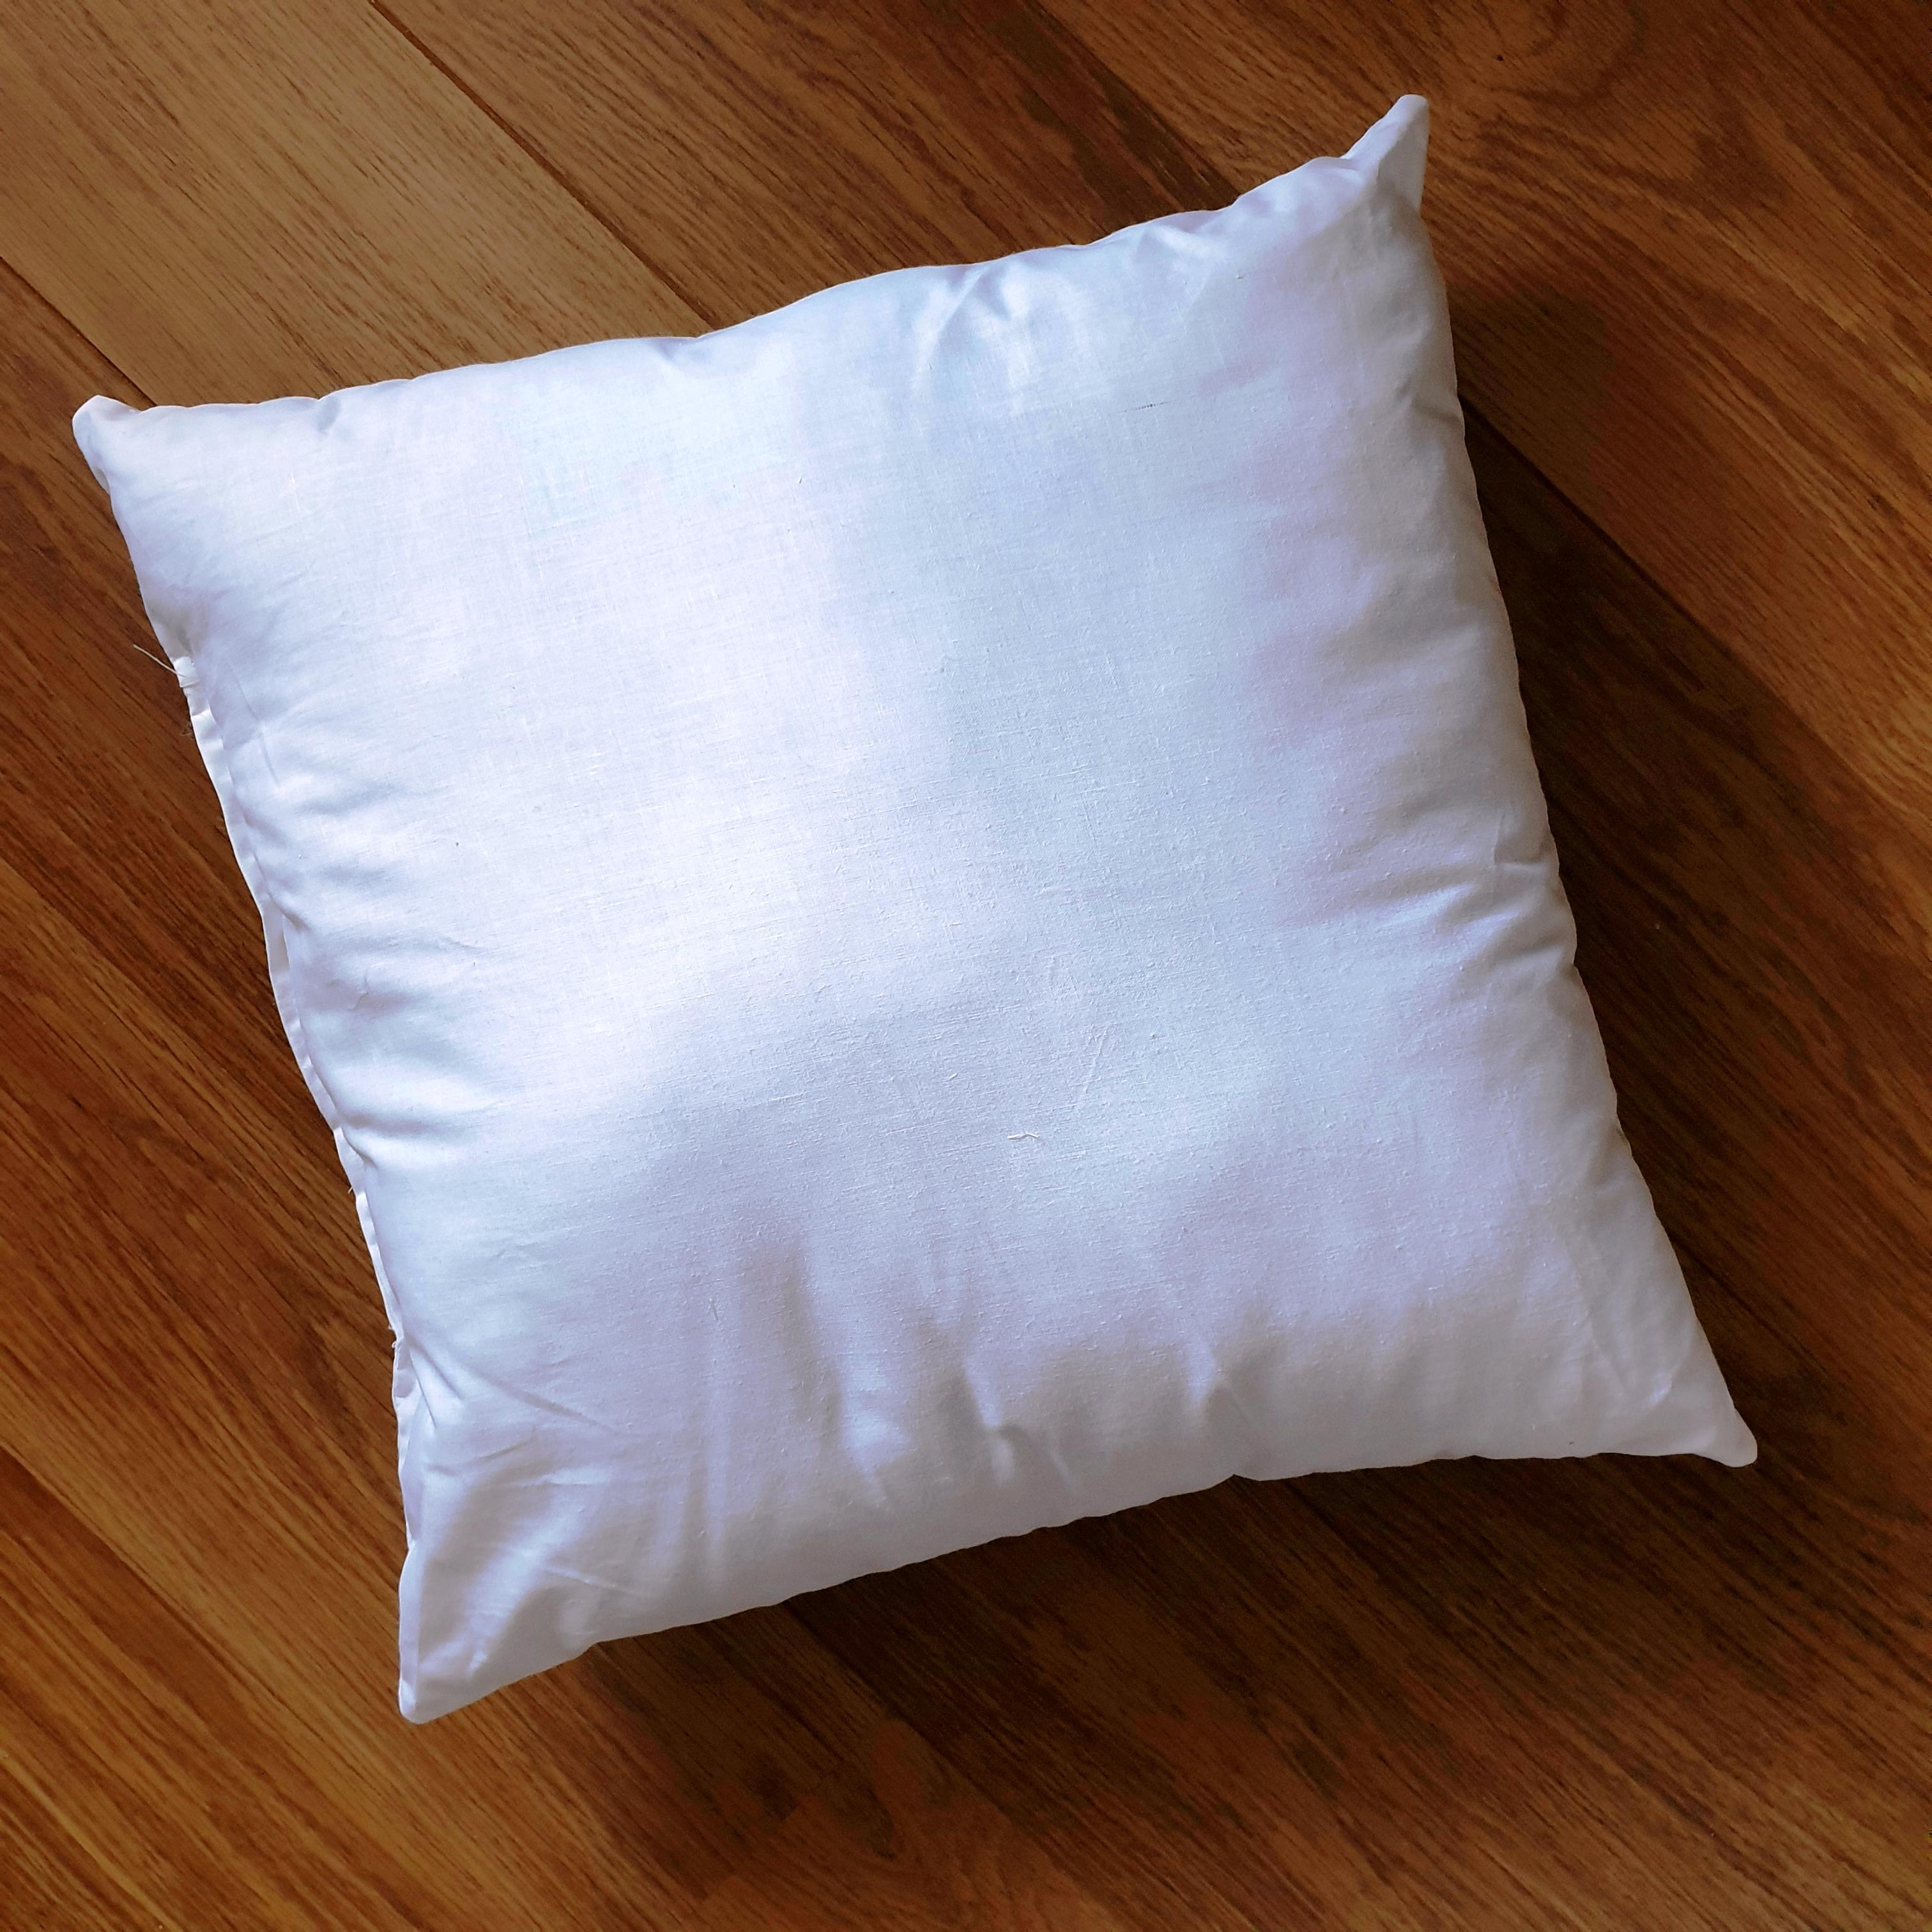 60cm cushion inner pad generously filled with Eco-Hollowfibre made from recycled plastic bottles in white poly cotton outer cover.